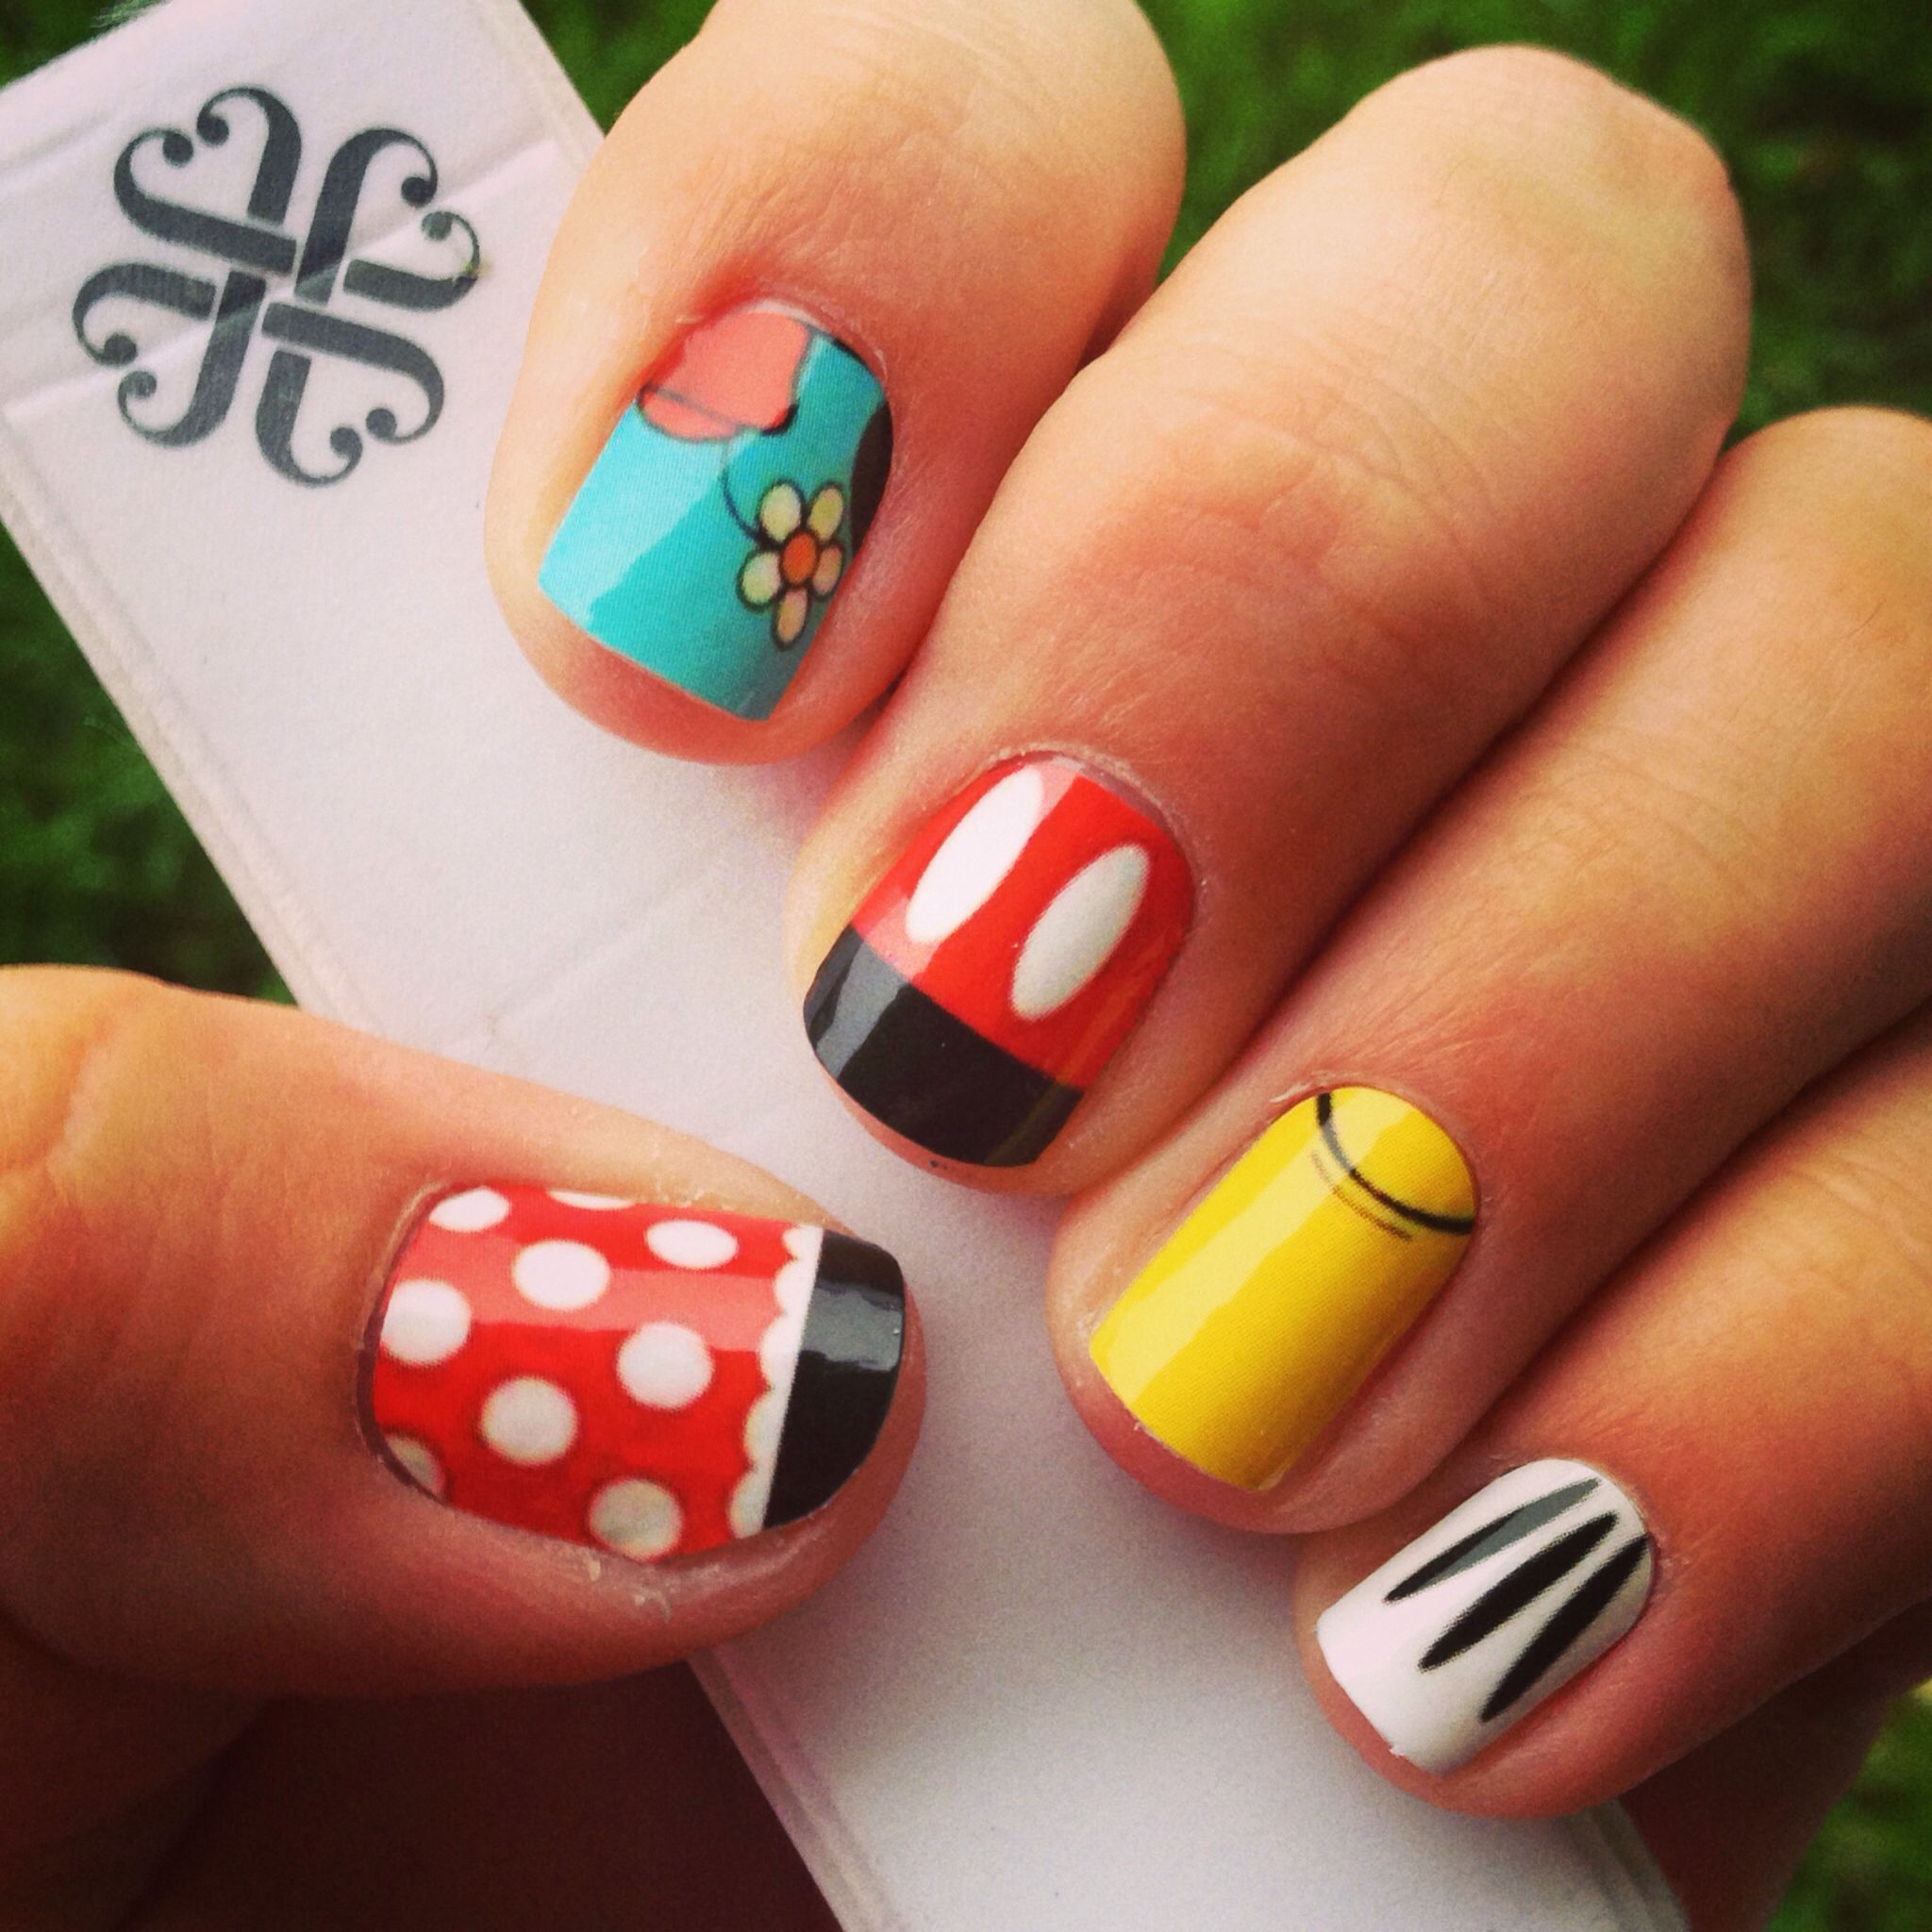 Jamberry Micky & Minnie inspired nail shields made in the Nail Art ...